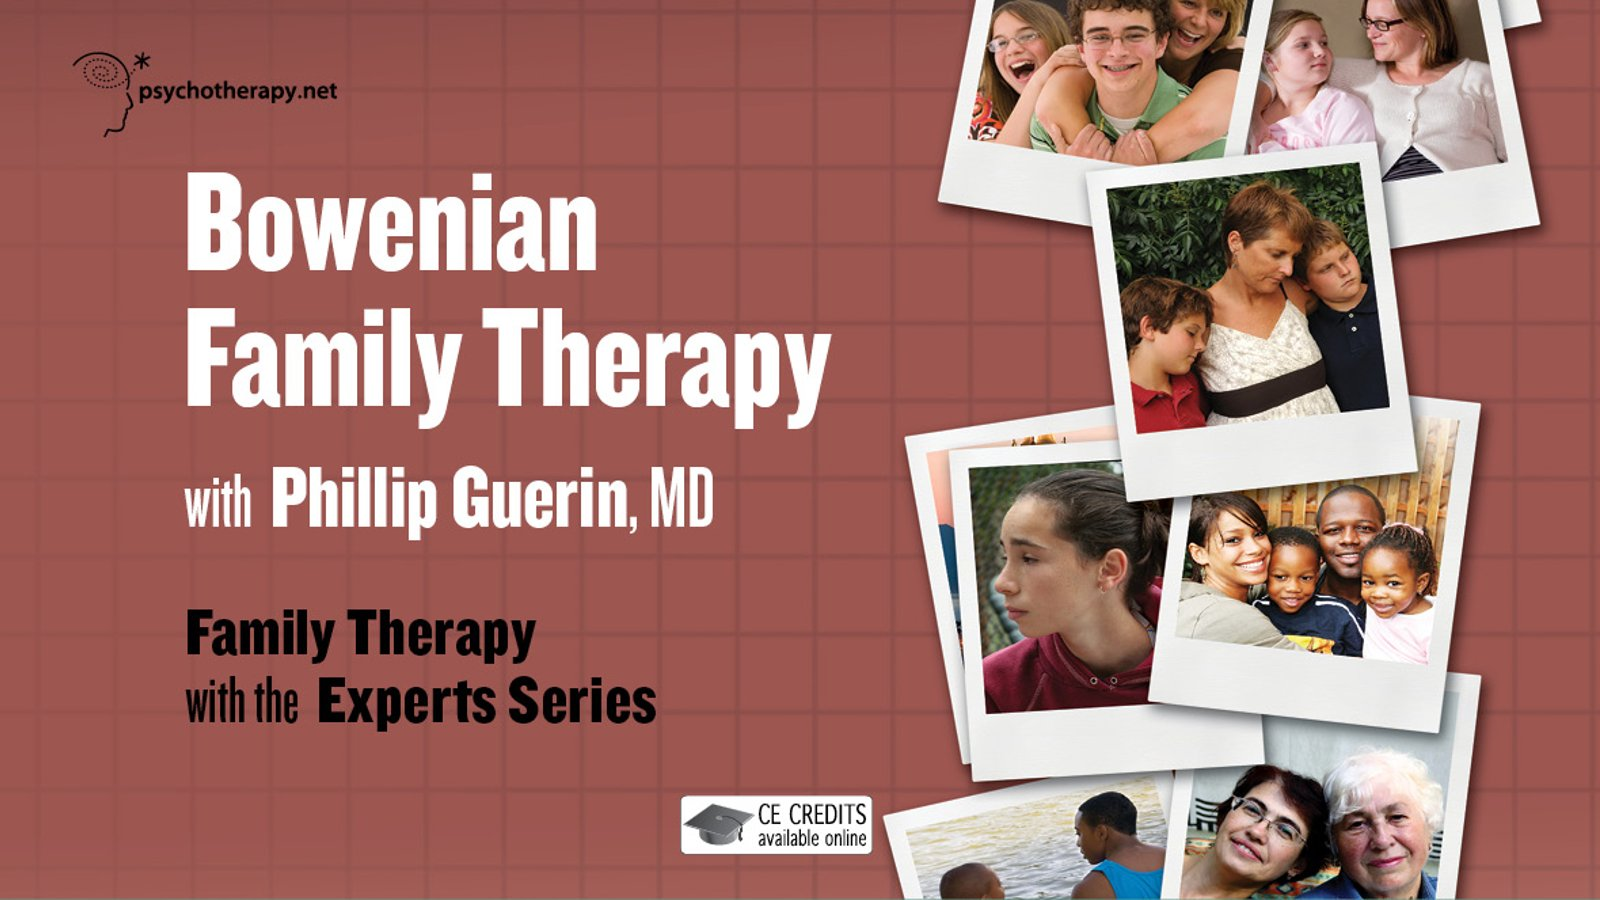 Bowenian Family Therapy - With Philip Guerin